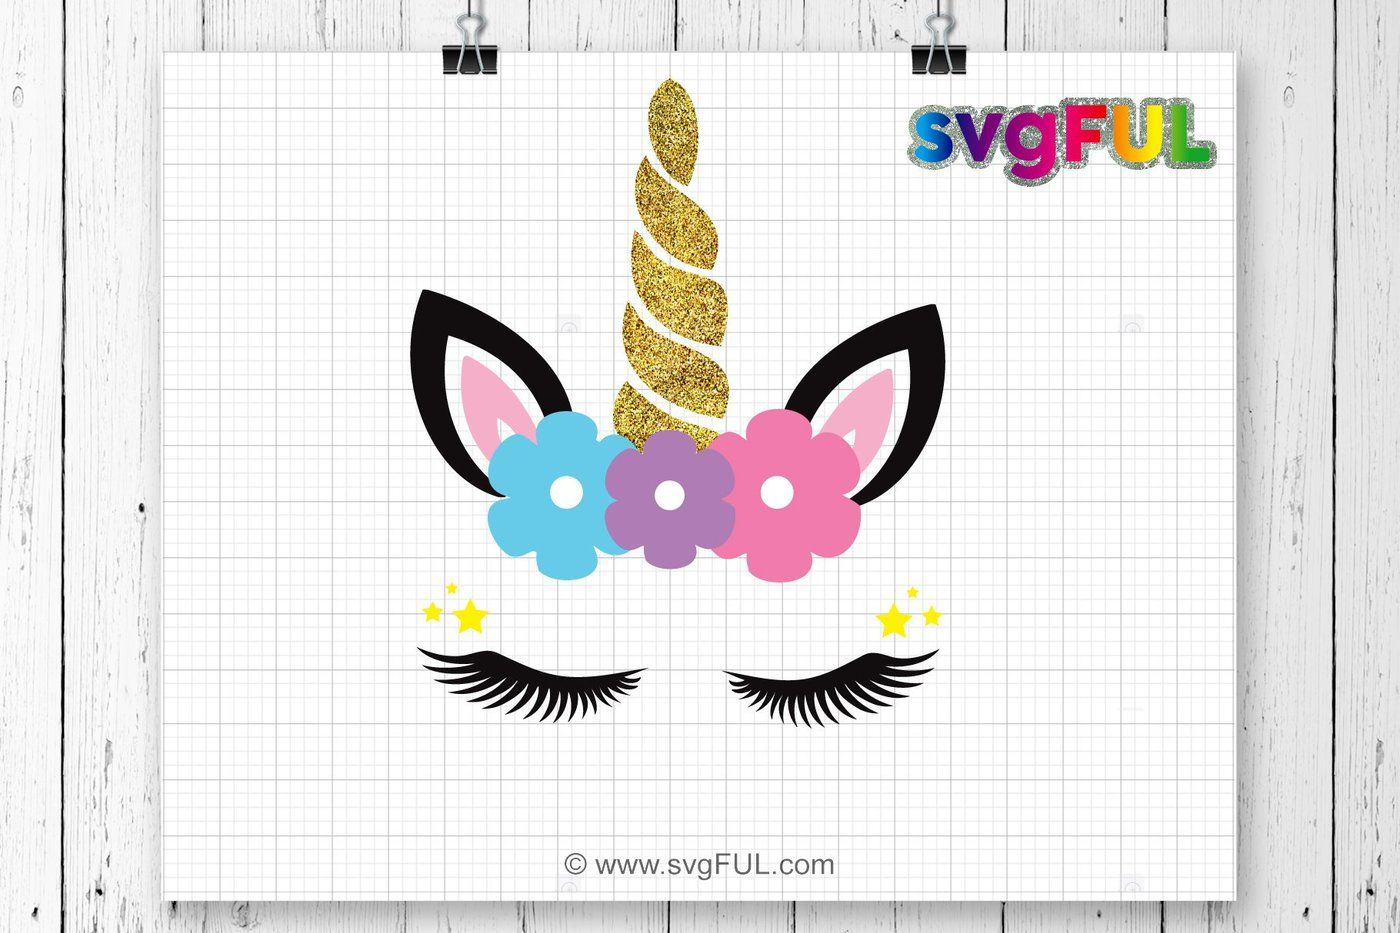 Glitter Unicorn Head Svg Unicorn Clip Art Unicorn Face Svg Cute